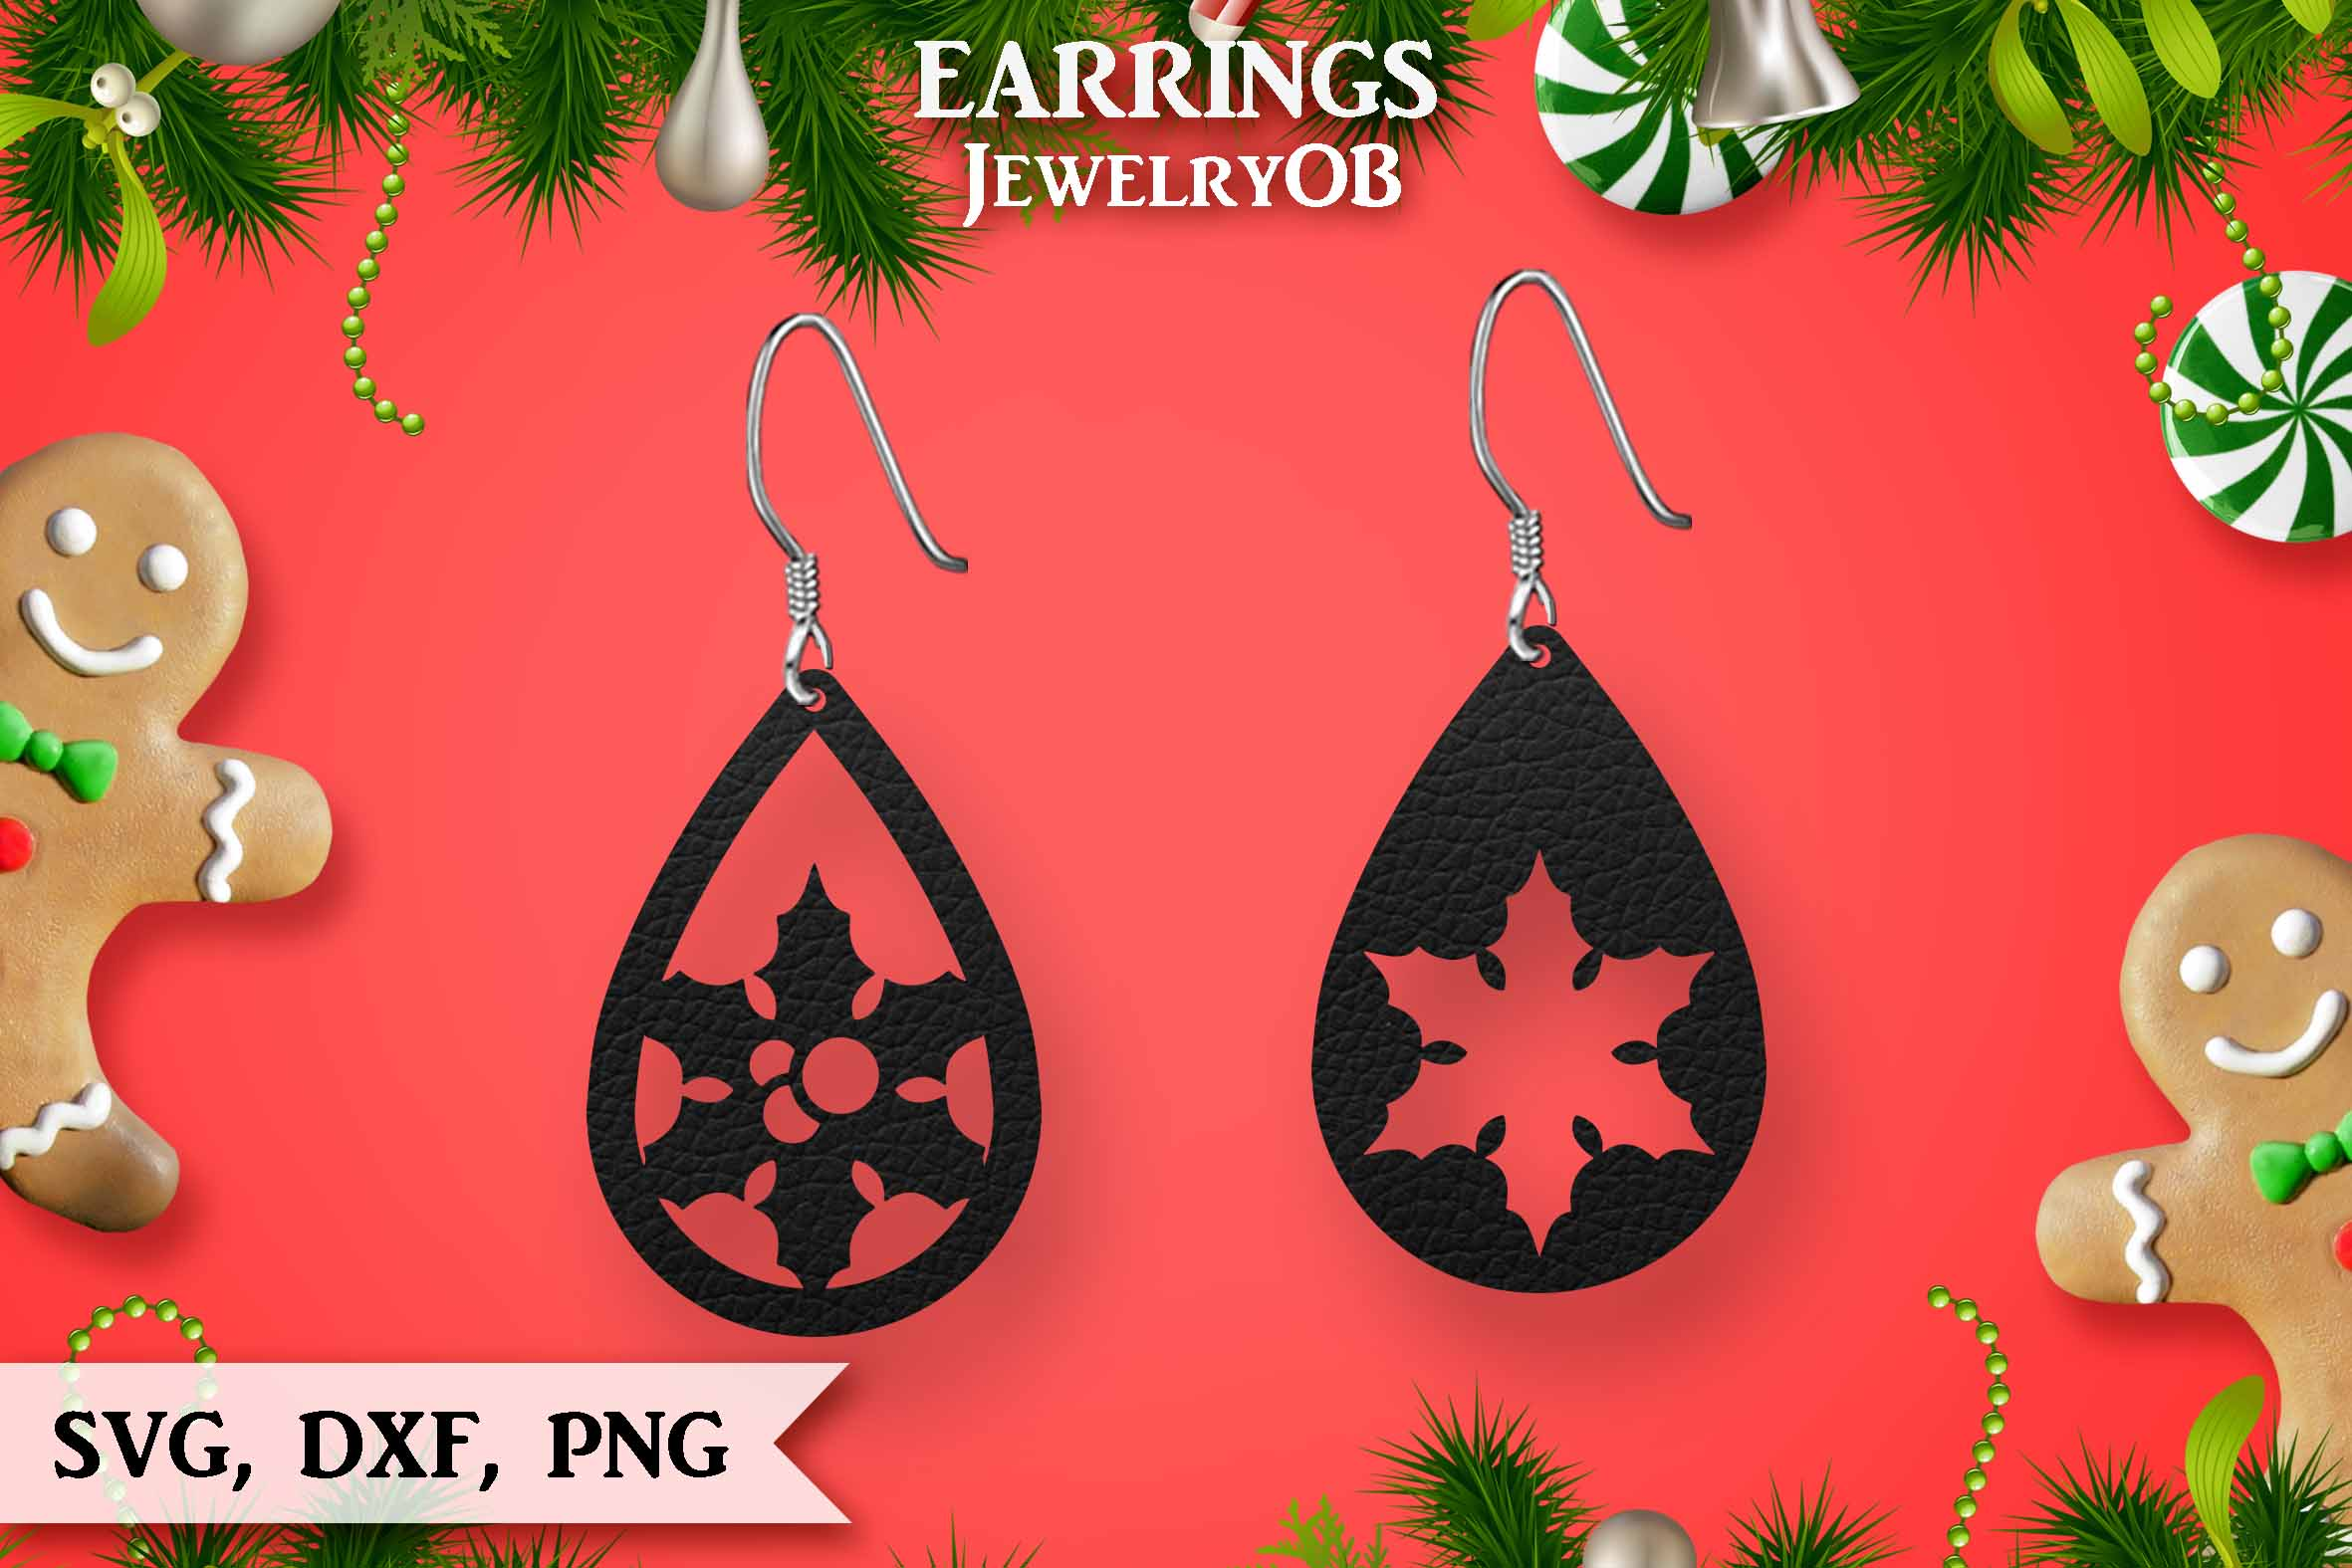 Christmas Earrings, Cut File, SVG DXF PNG, Teardrop, Berry example image 1